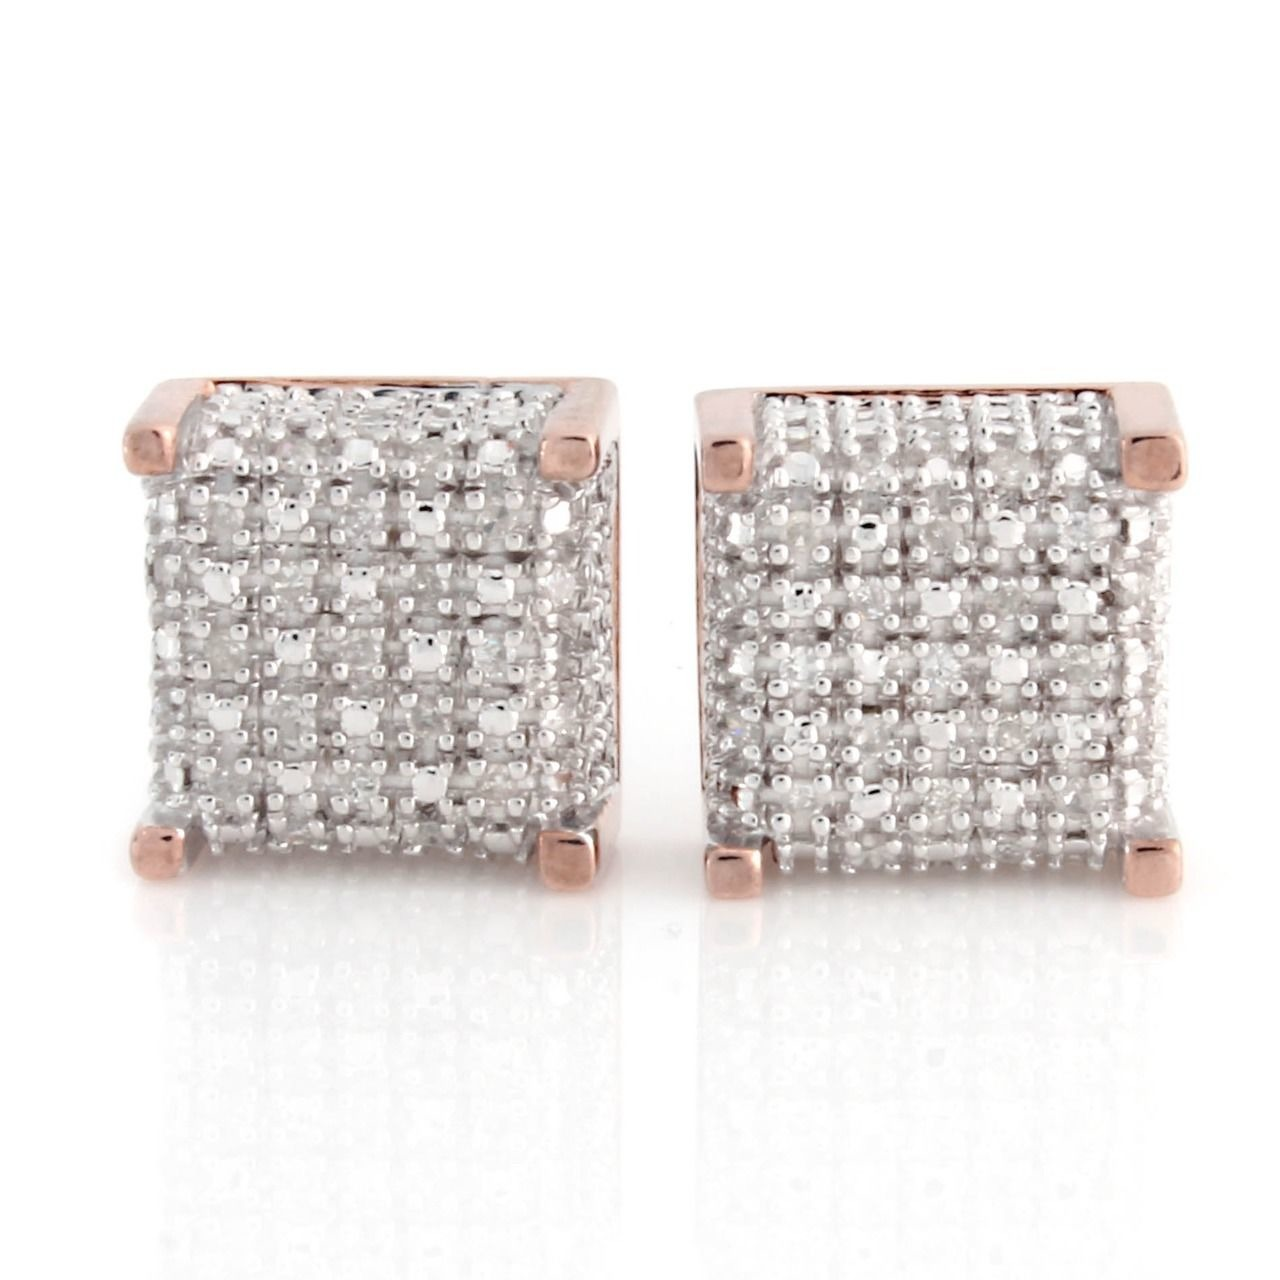 18K Rose Gold Over Sterling Silver 0.20 ct Natural Diamond Stud Earrings Q541